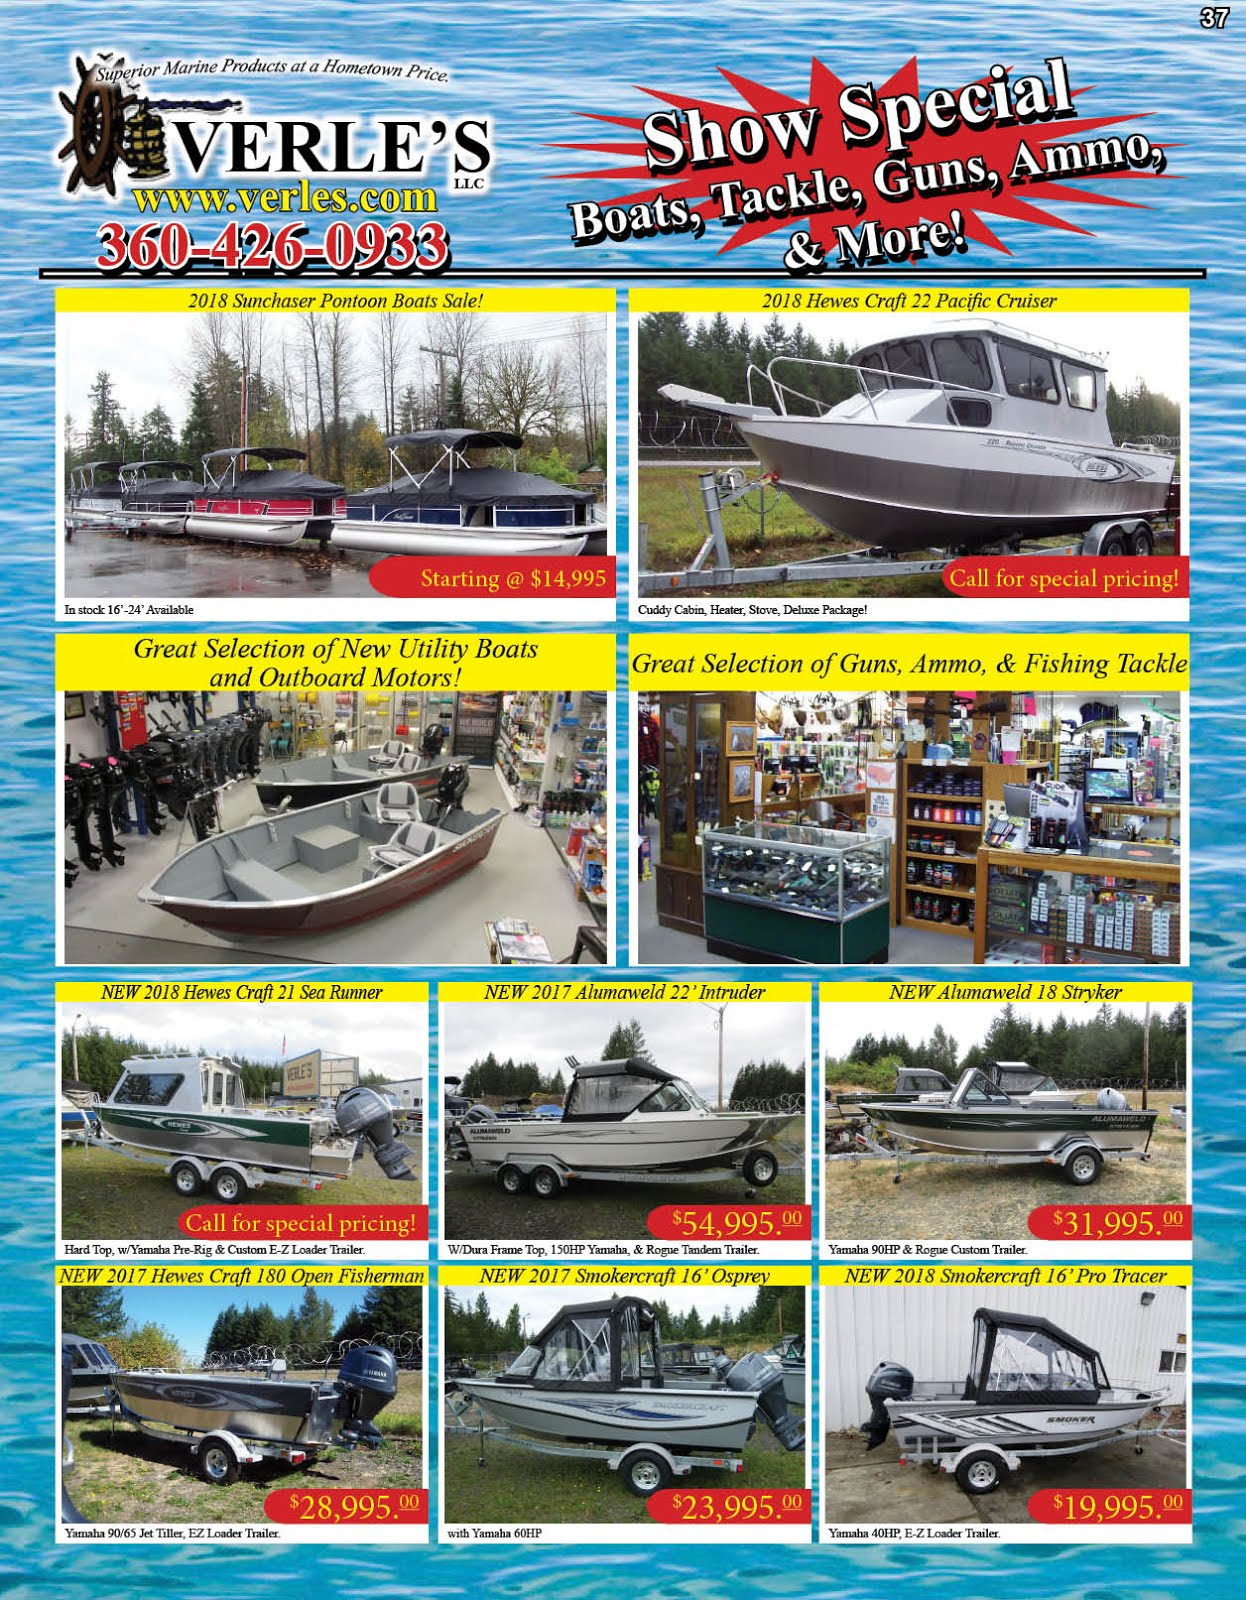 Verles llc. Has Show Specials on Boats & Tackle, Guns & Ammo, More!!